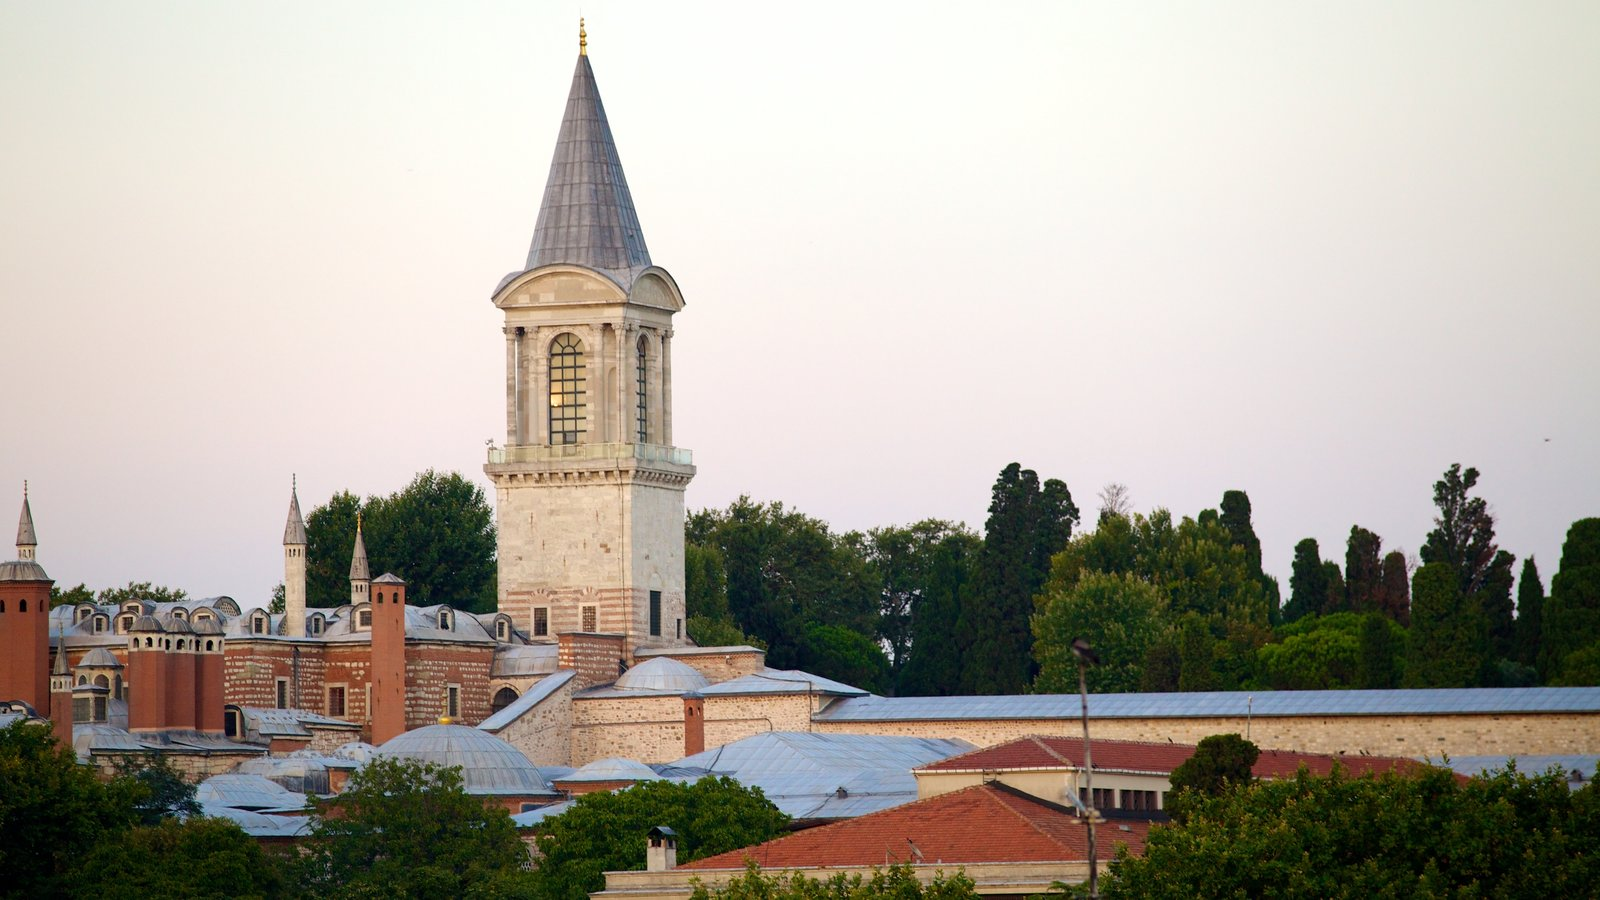 Topkapi Palace which includes chateau or palace and heritage architecture